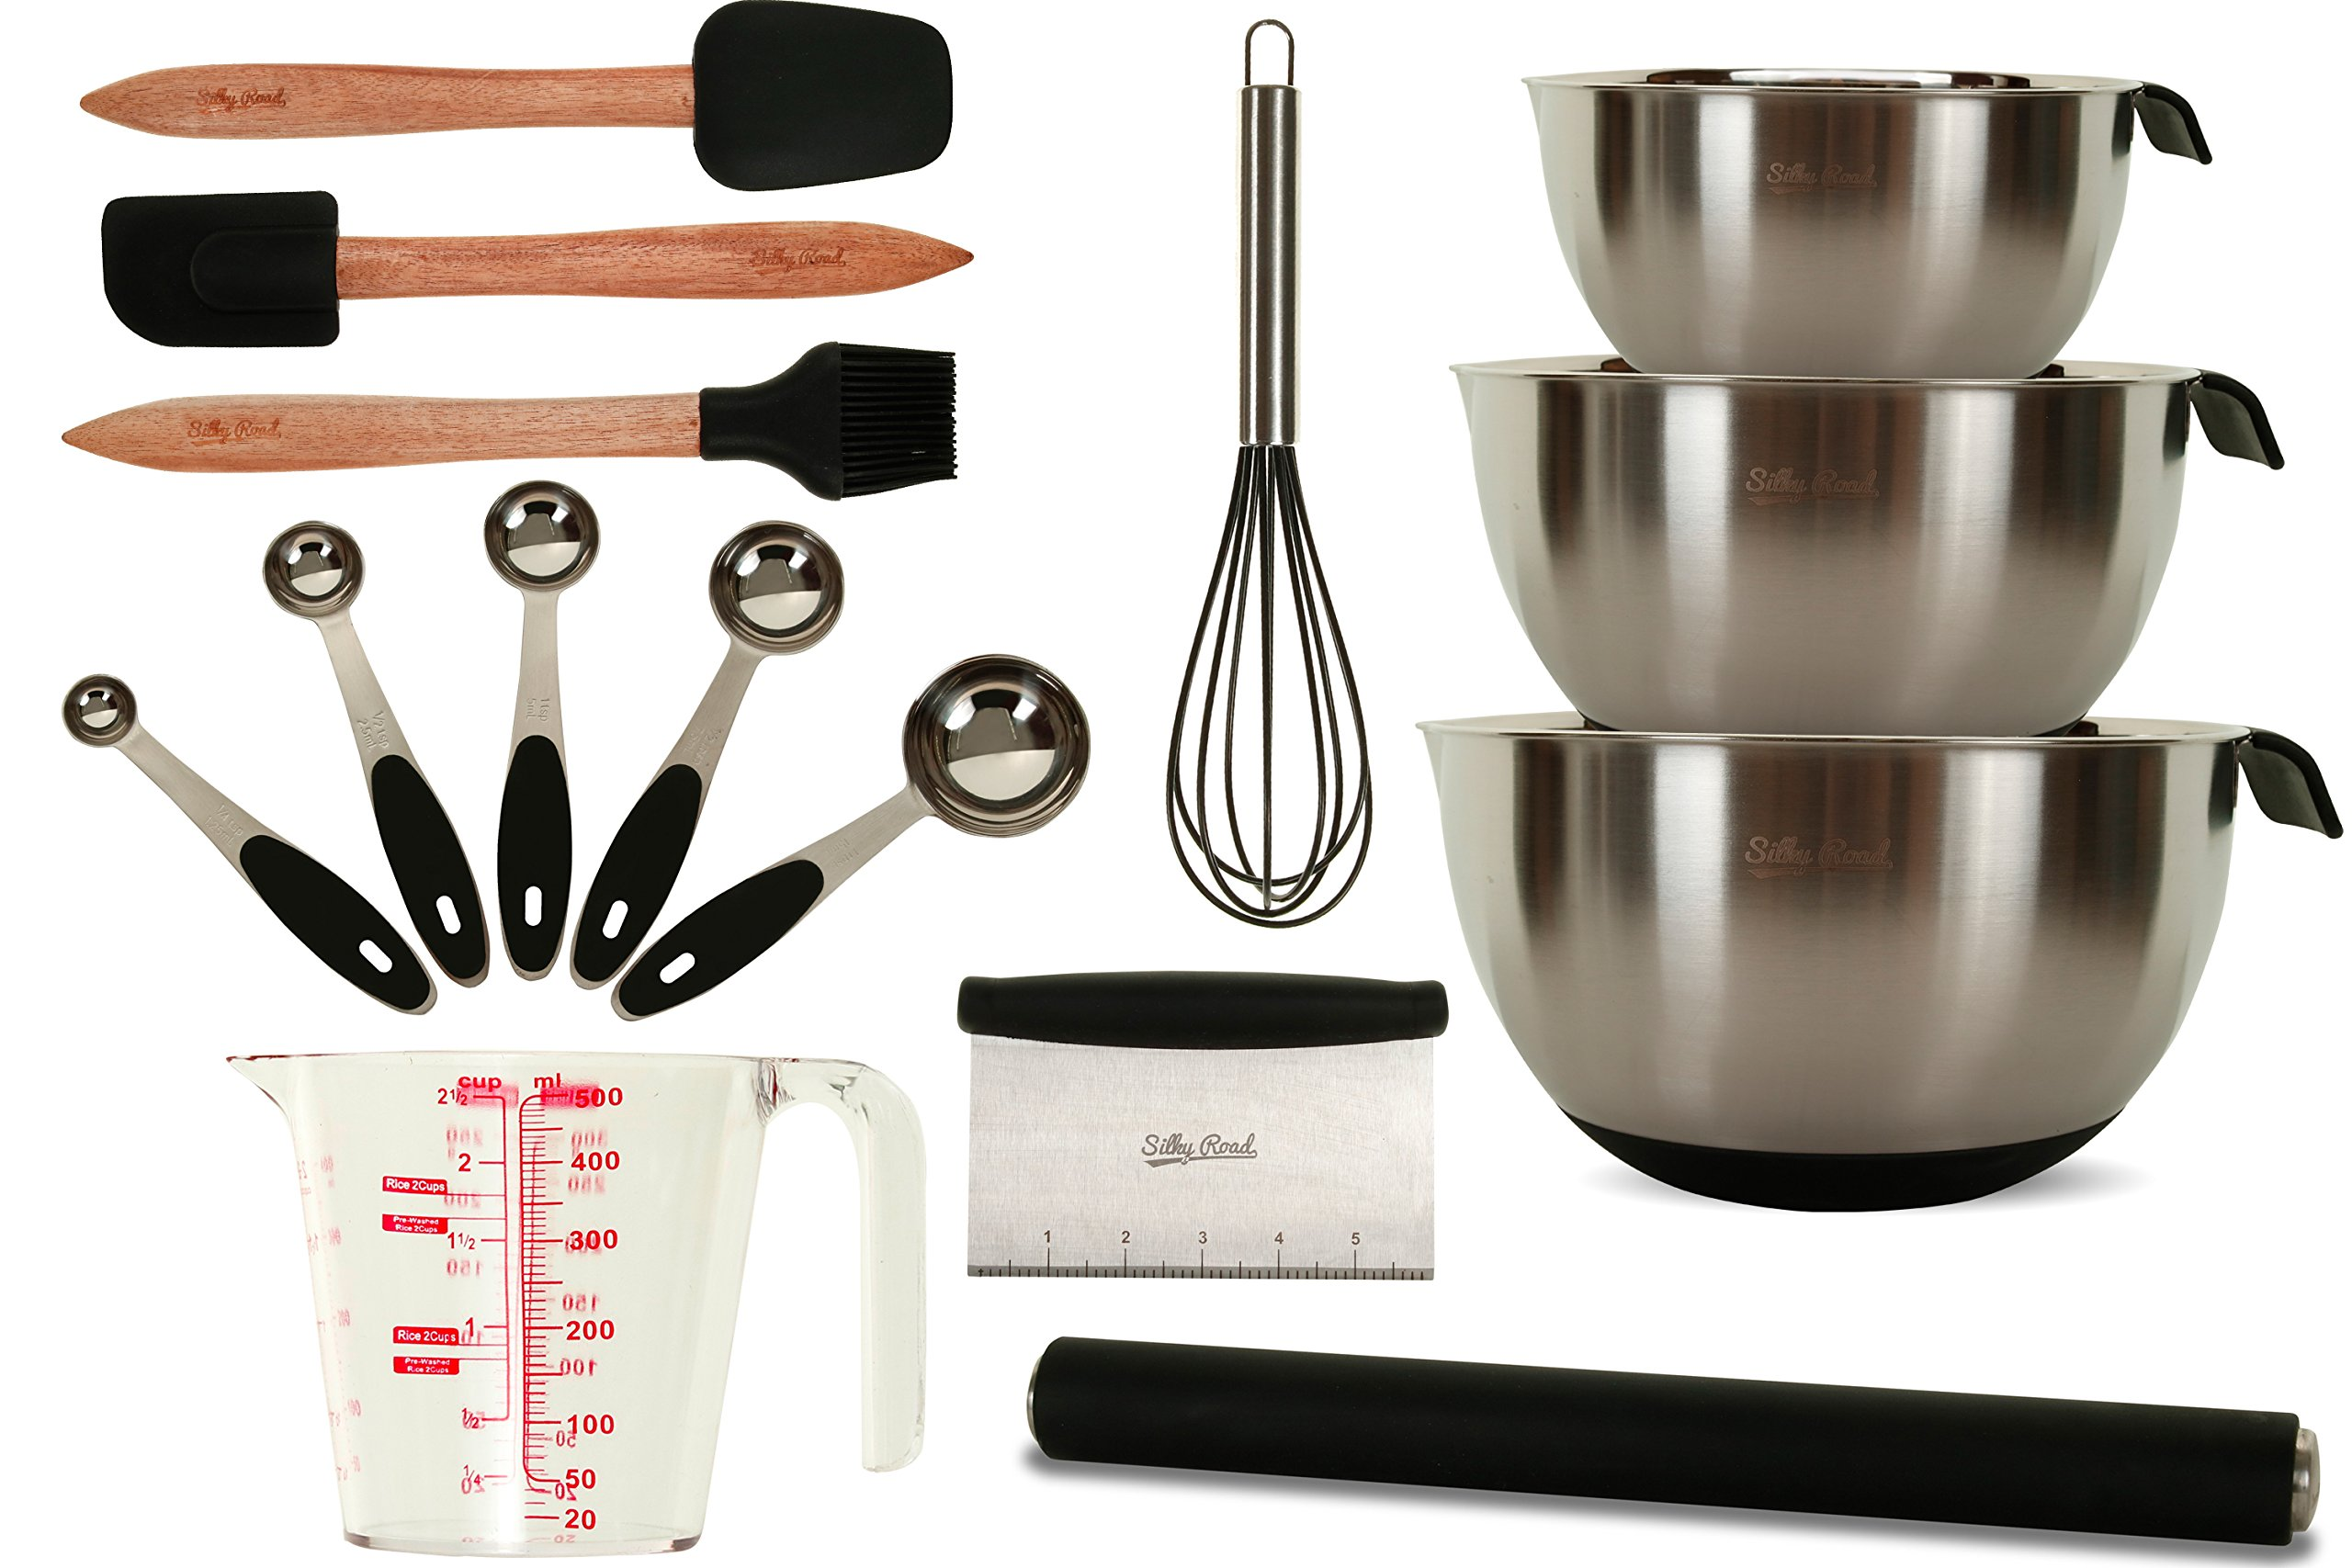 15-Piece Commercial Professional Baking Set | Stainless Steel & Silicone Bakeware | 3 Mixing Bowls | Rolling Pin | Measuring Cup + 5 Spoons | Basting Brush | Whisk | Spatula | Scraper | Dough Cutter